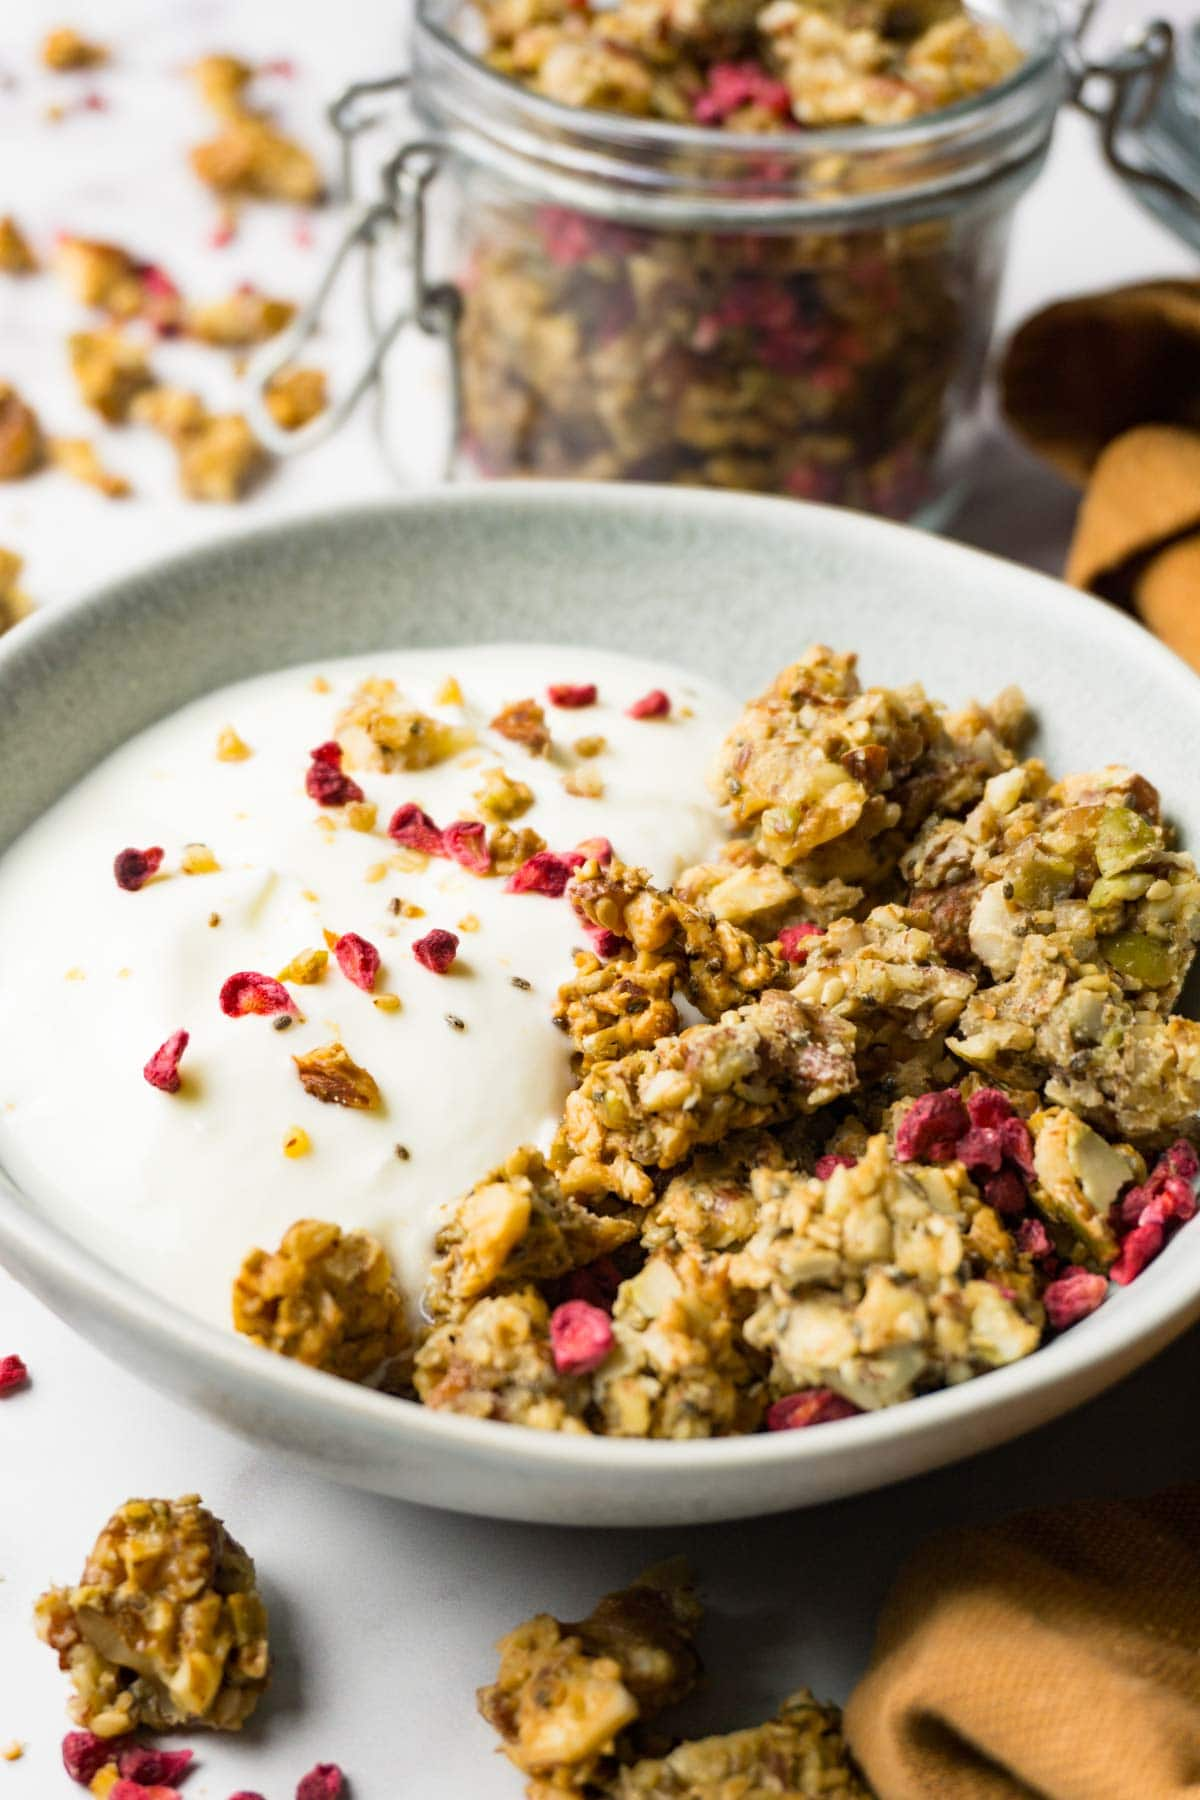 A small round bowl with yoghurt and nuts and seeds granola topped with freeze-dried raspberries, a glass jar with granola on the background.